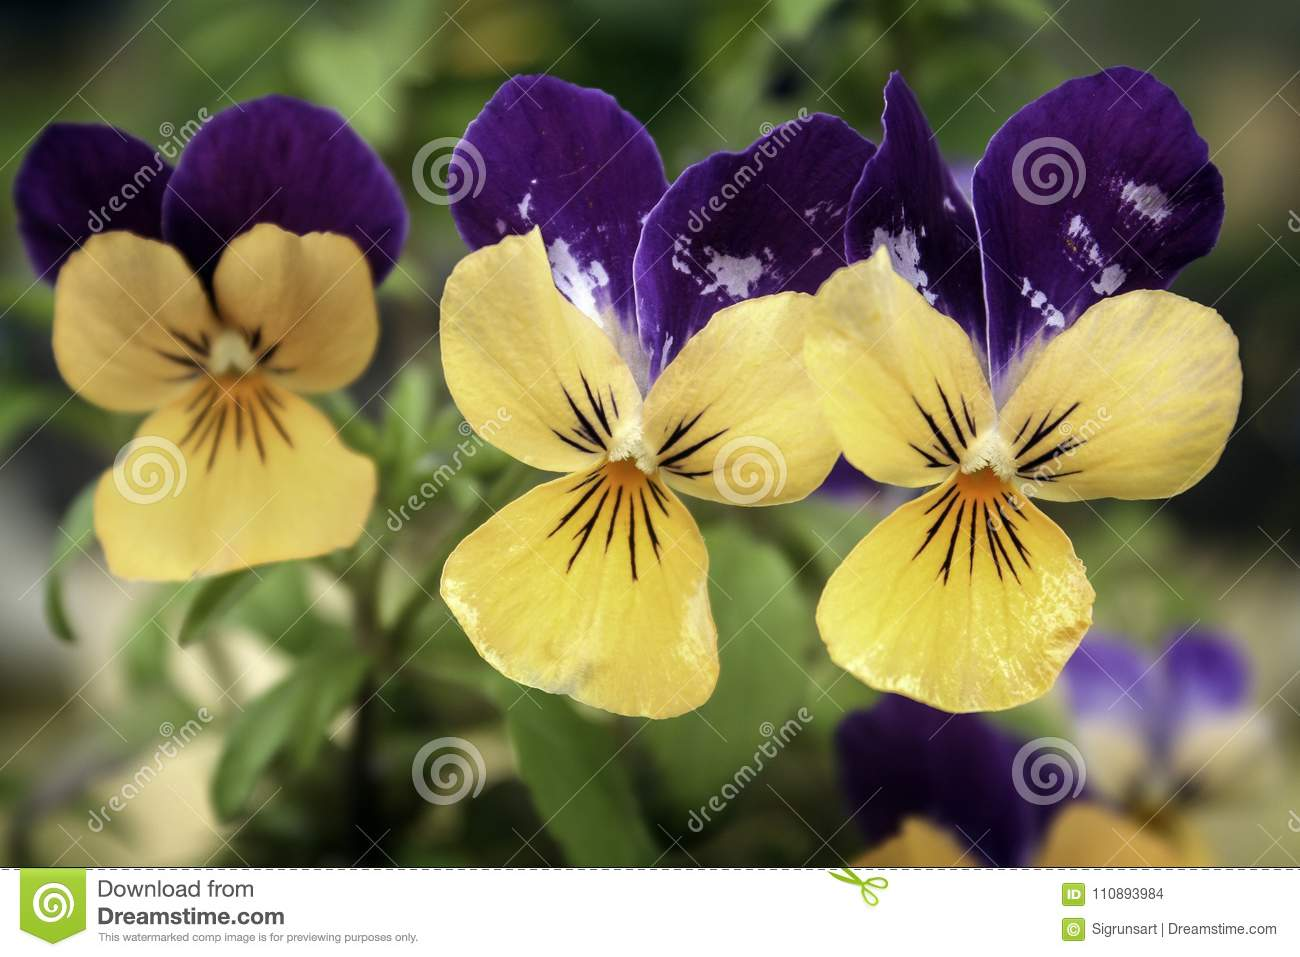 Pretty yellow and purple violas